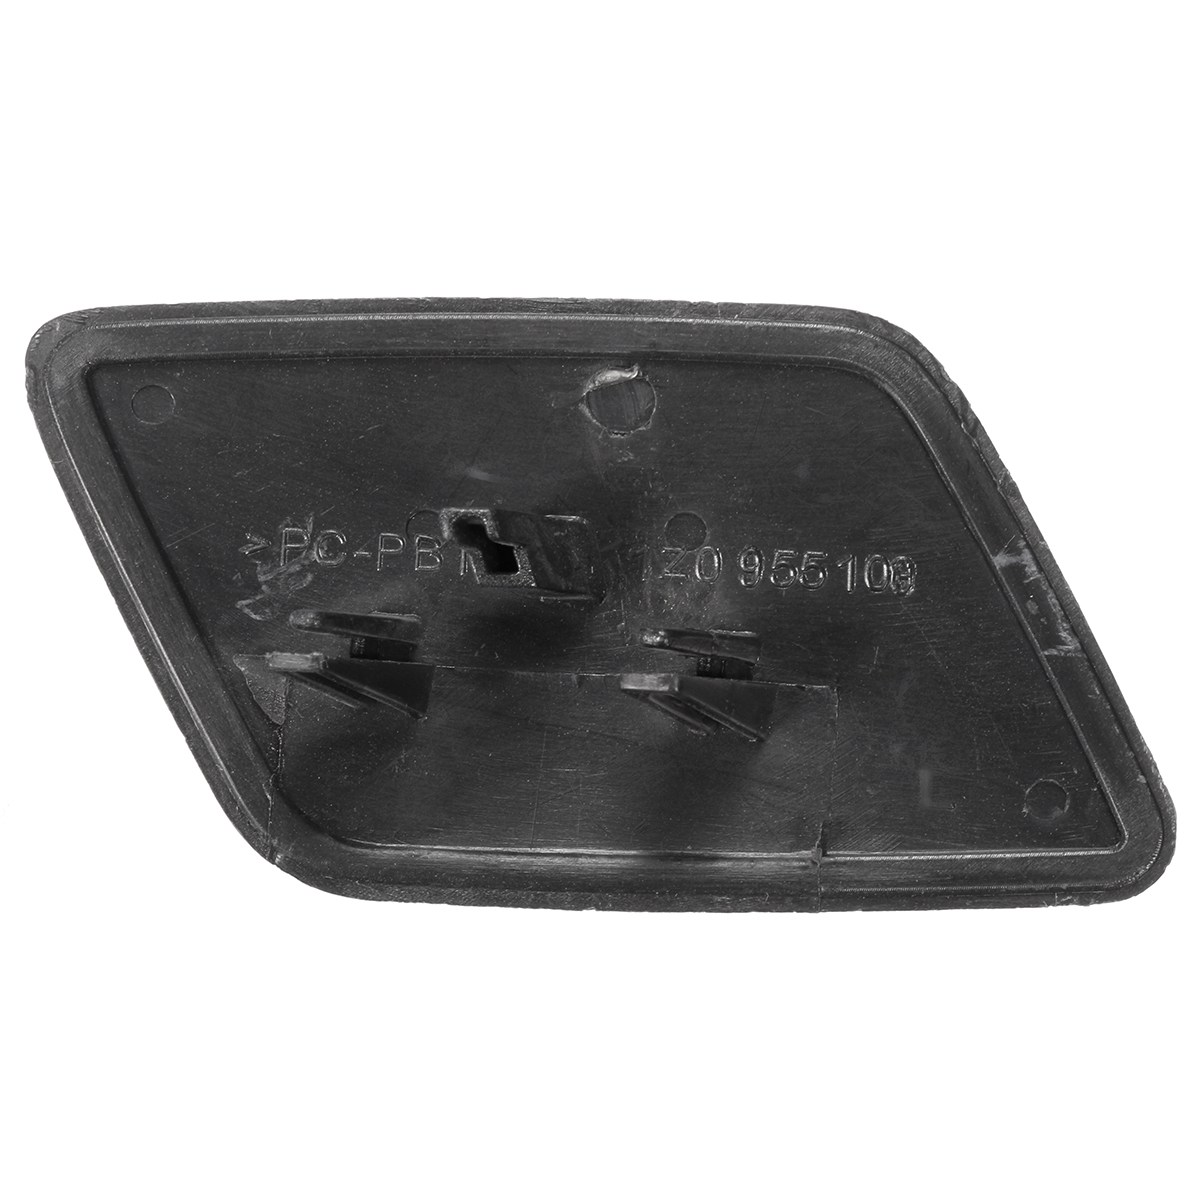 SKODA OCTAVIA MK2 03 HEADLAMP LIGHT  WASHER JET CAP COVER RIGHT NEW 1Z0955109